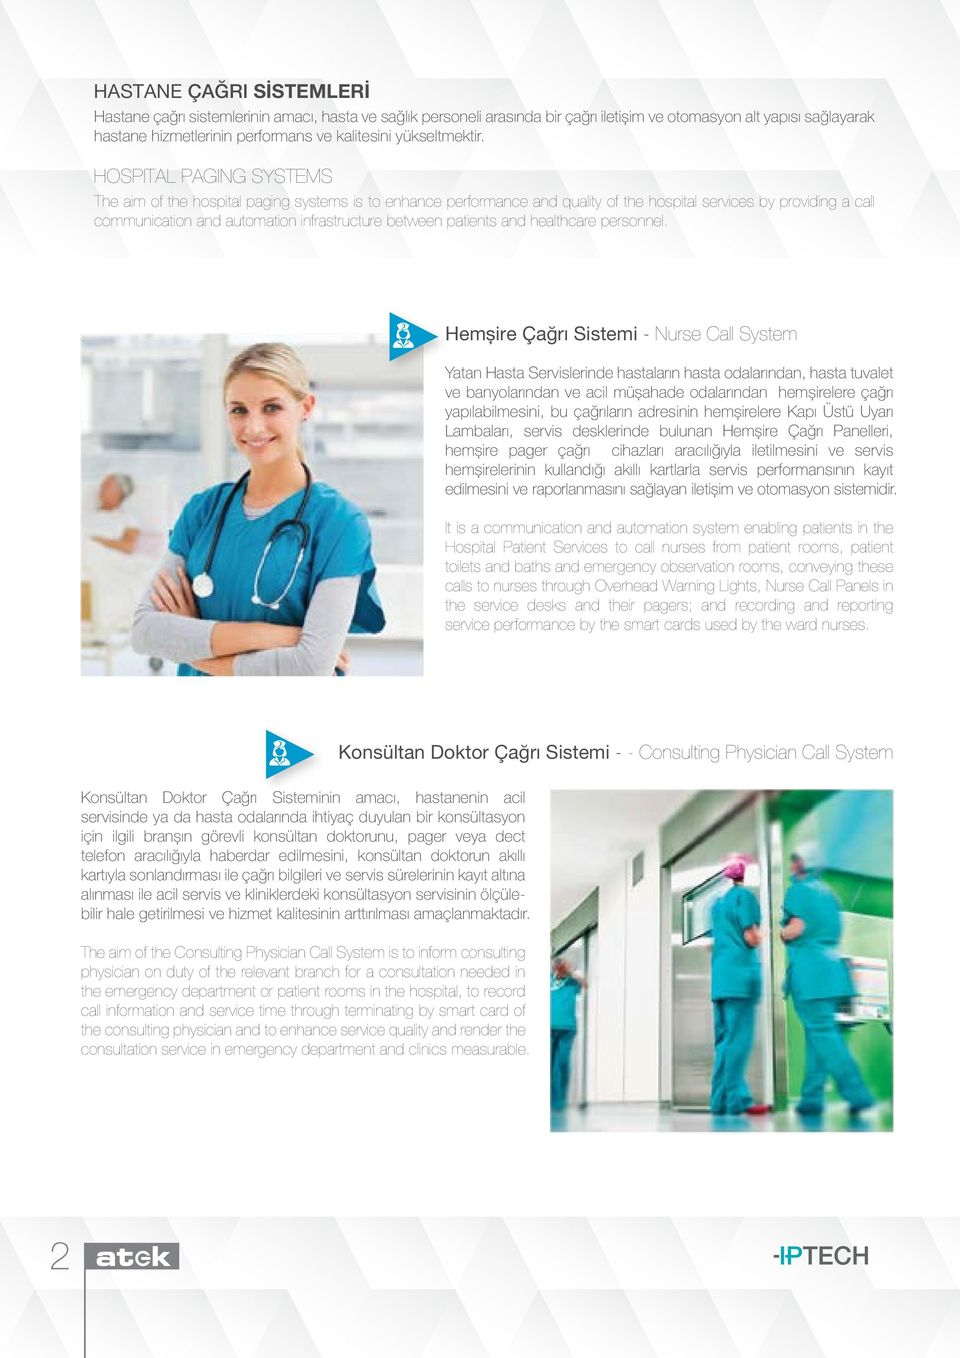 HOSPITAL PAGING SYSTEMS The aim of the hospital paging systems is to enhance performance and quality of the hospital services by providing a call communication and automation infrastructure between